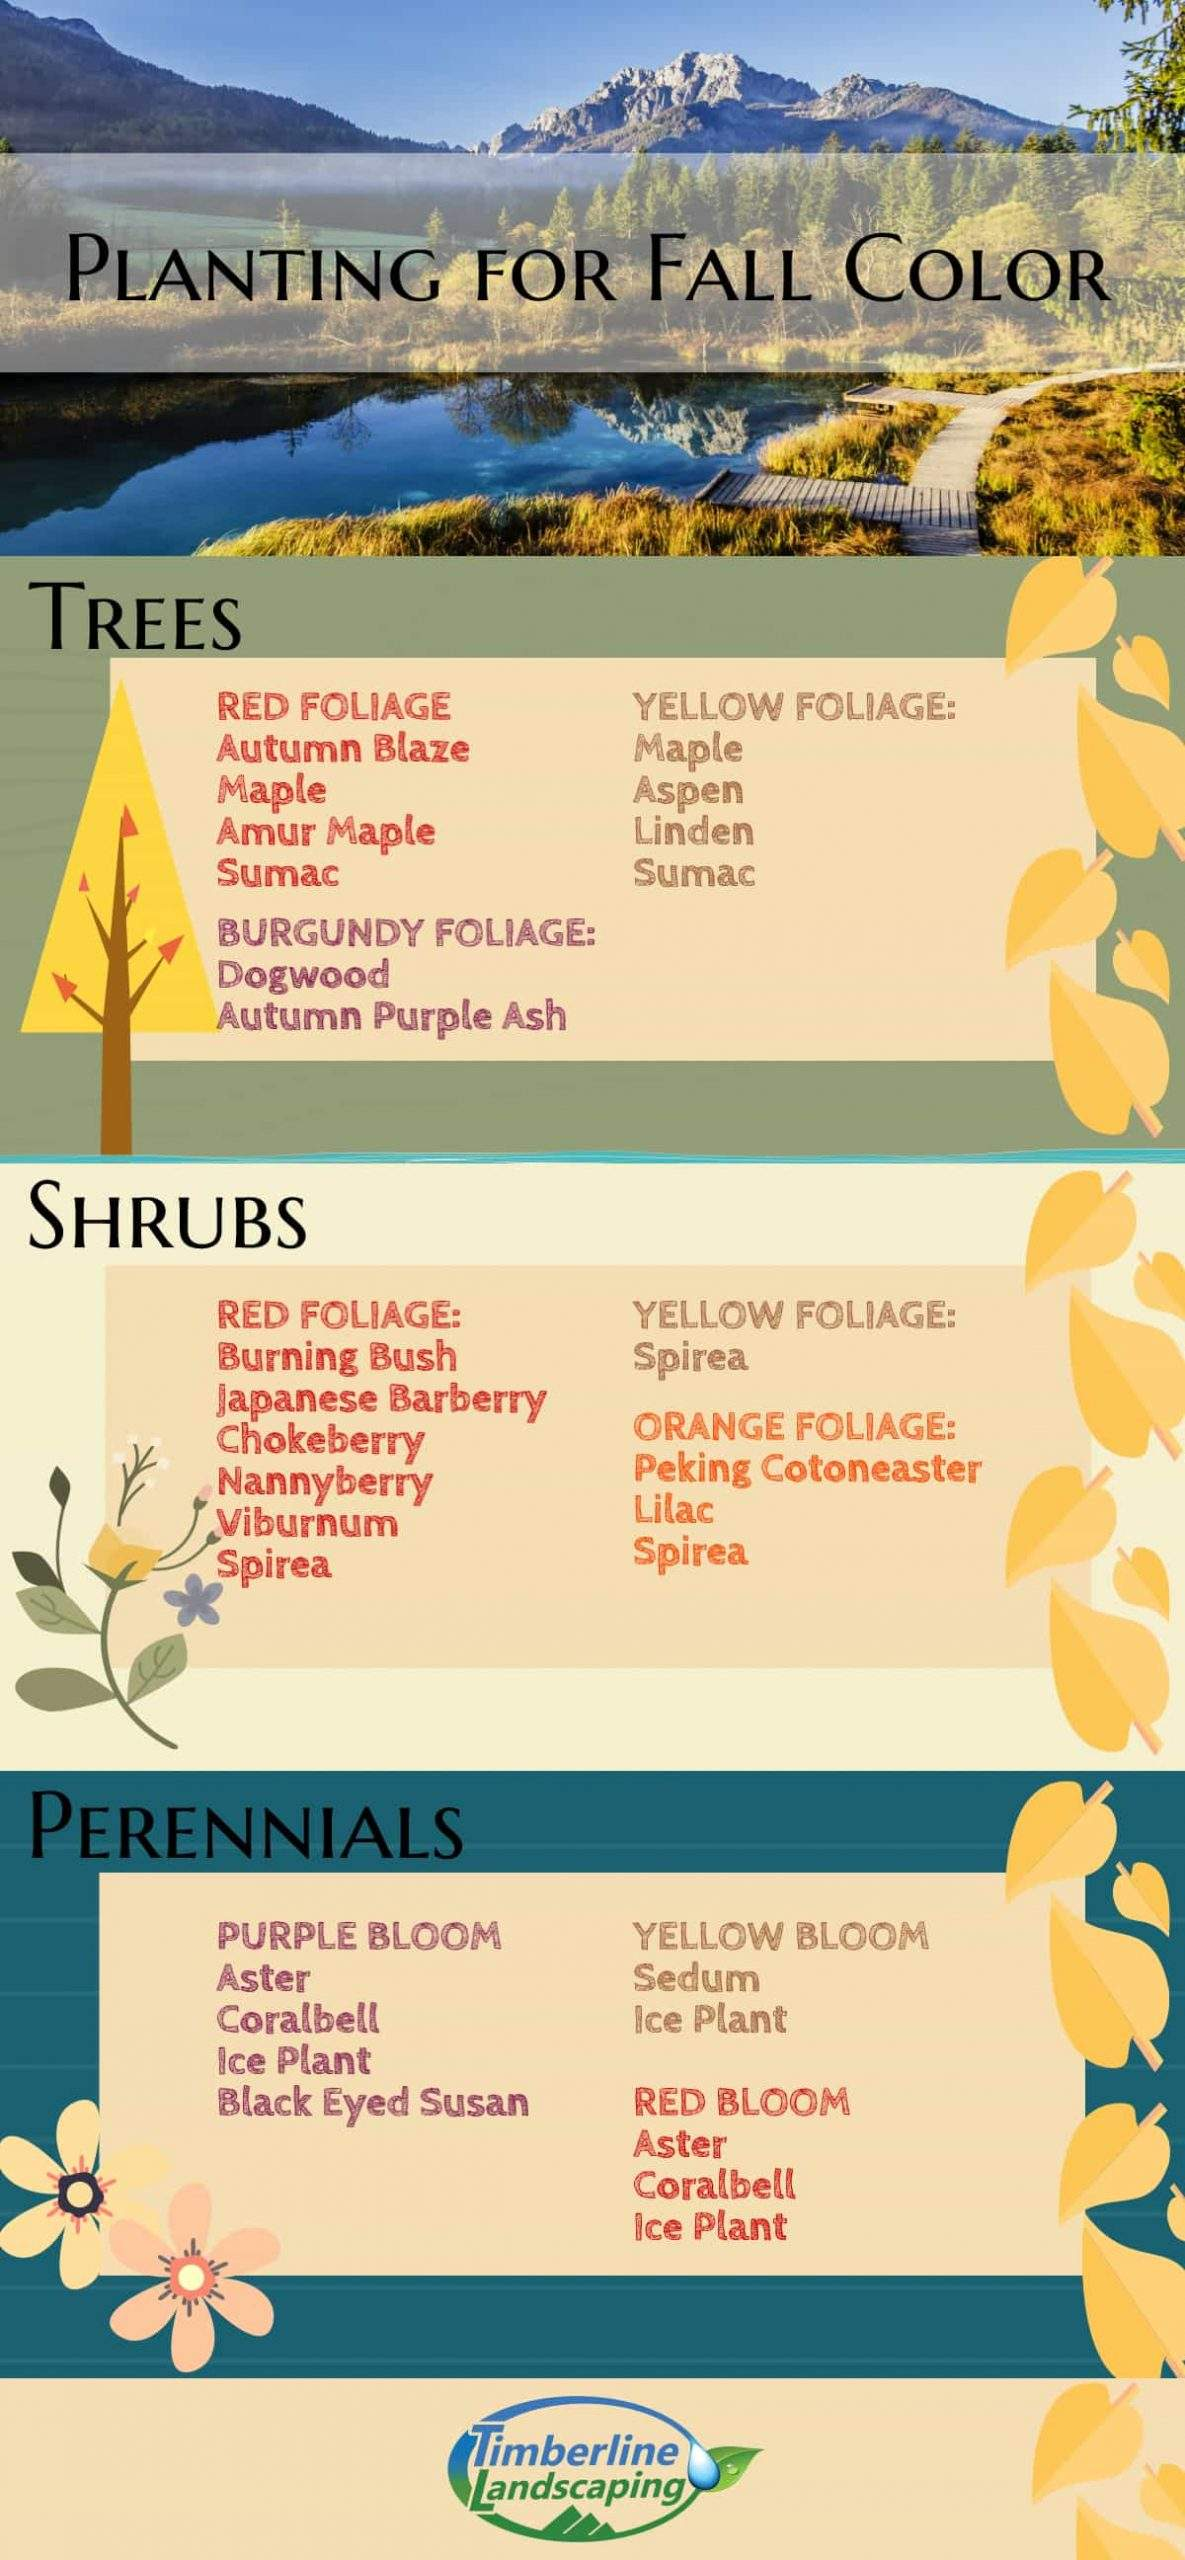 Planting For Fall Color Infographic